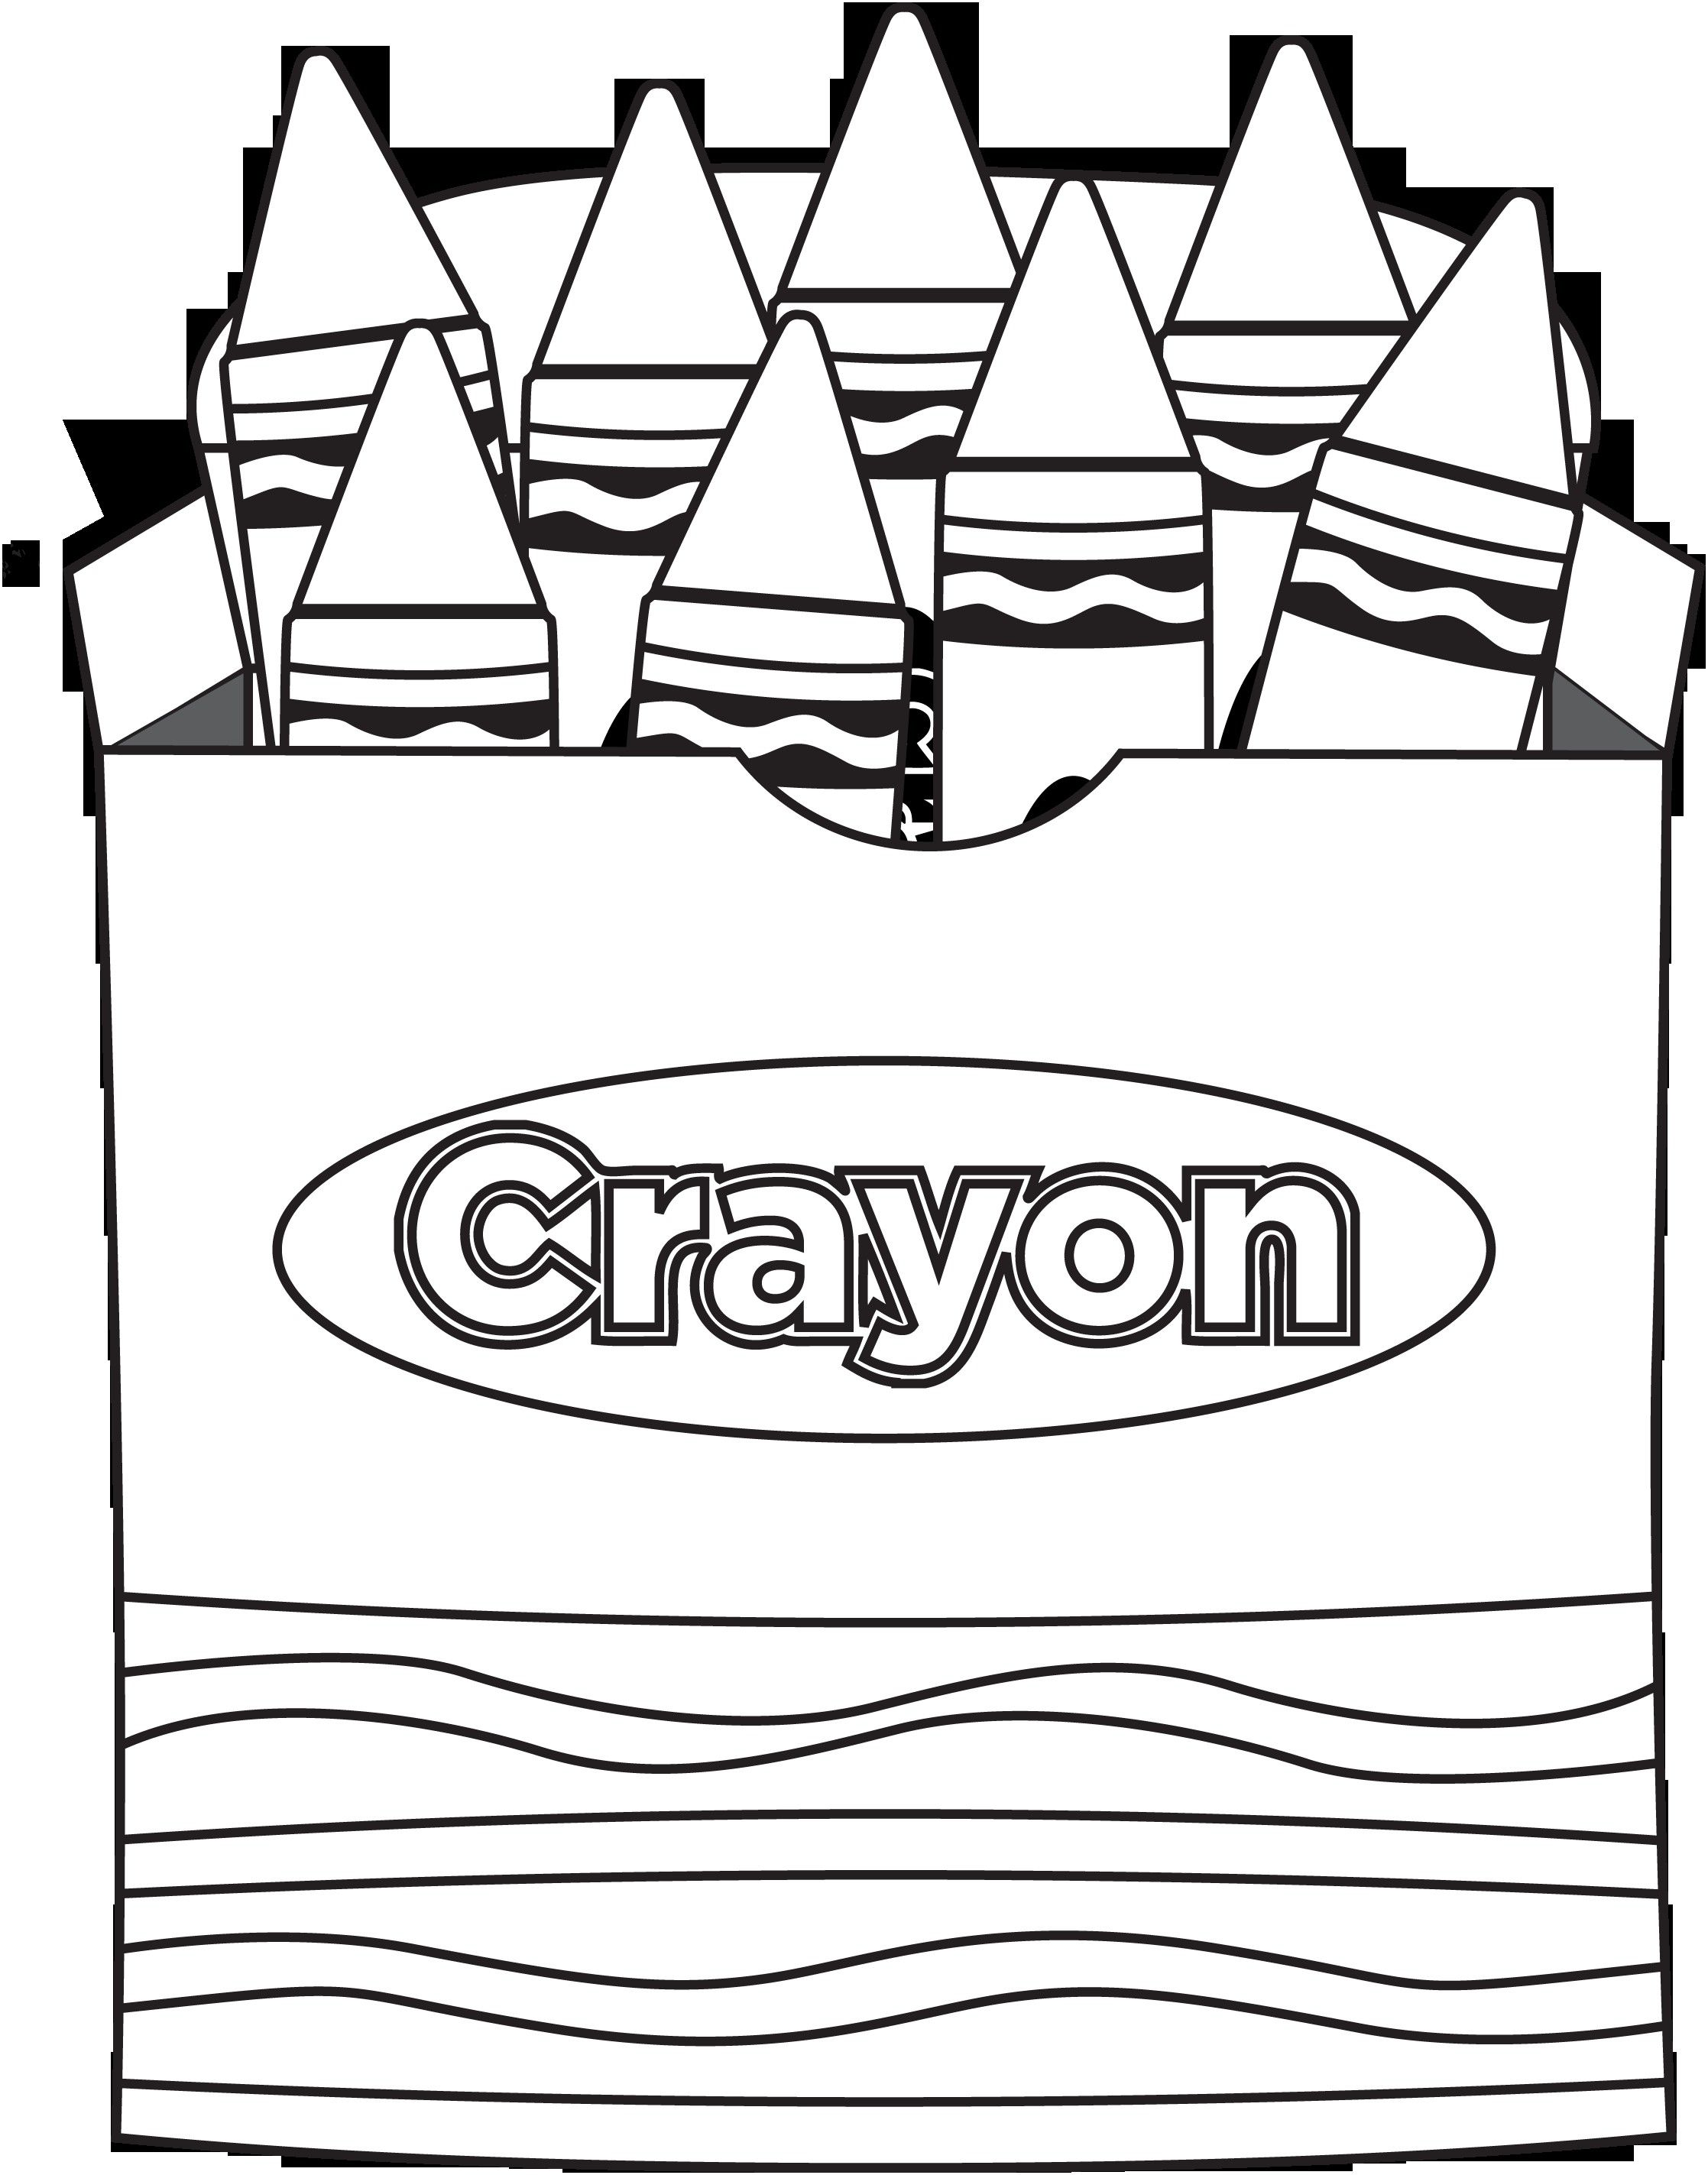 Pin by Zyann Coleman on Crayola creations | School coloring ... jpg library download